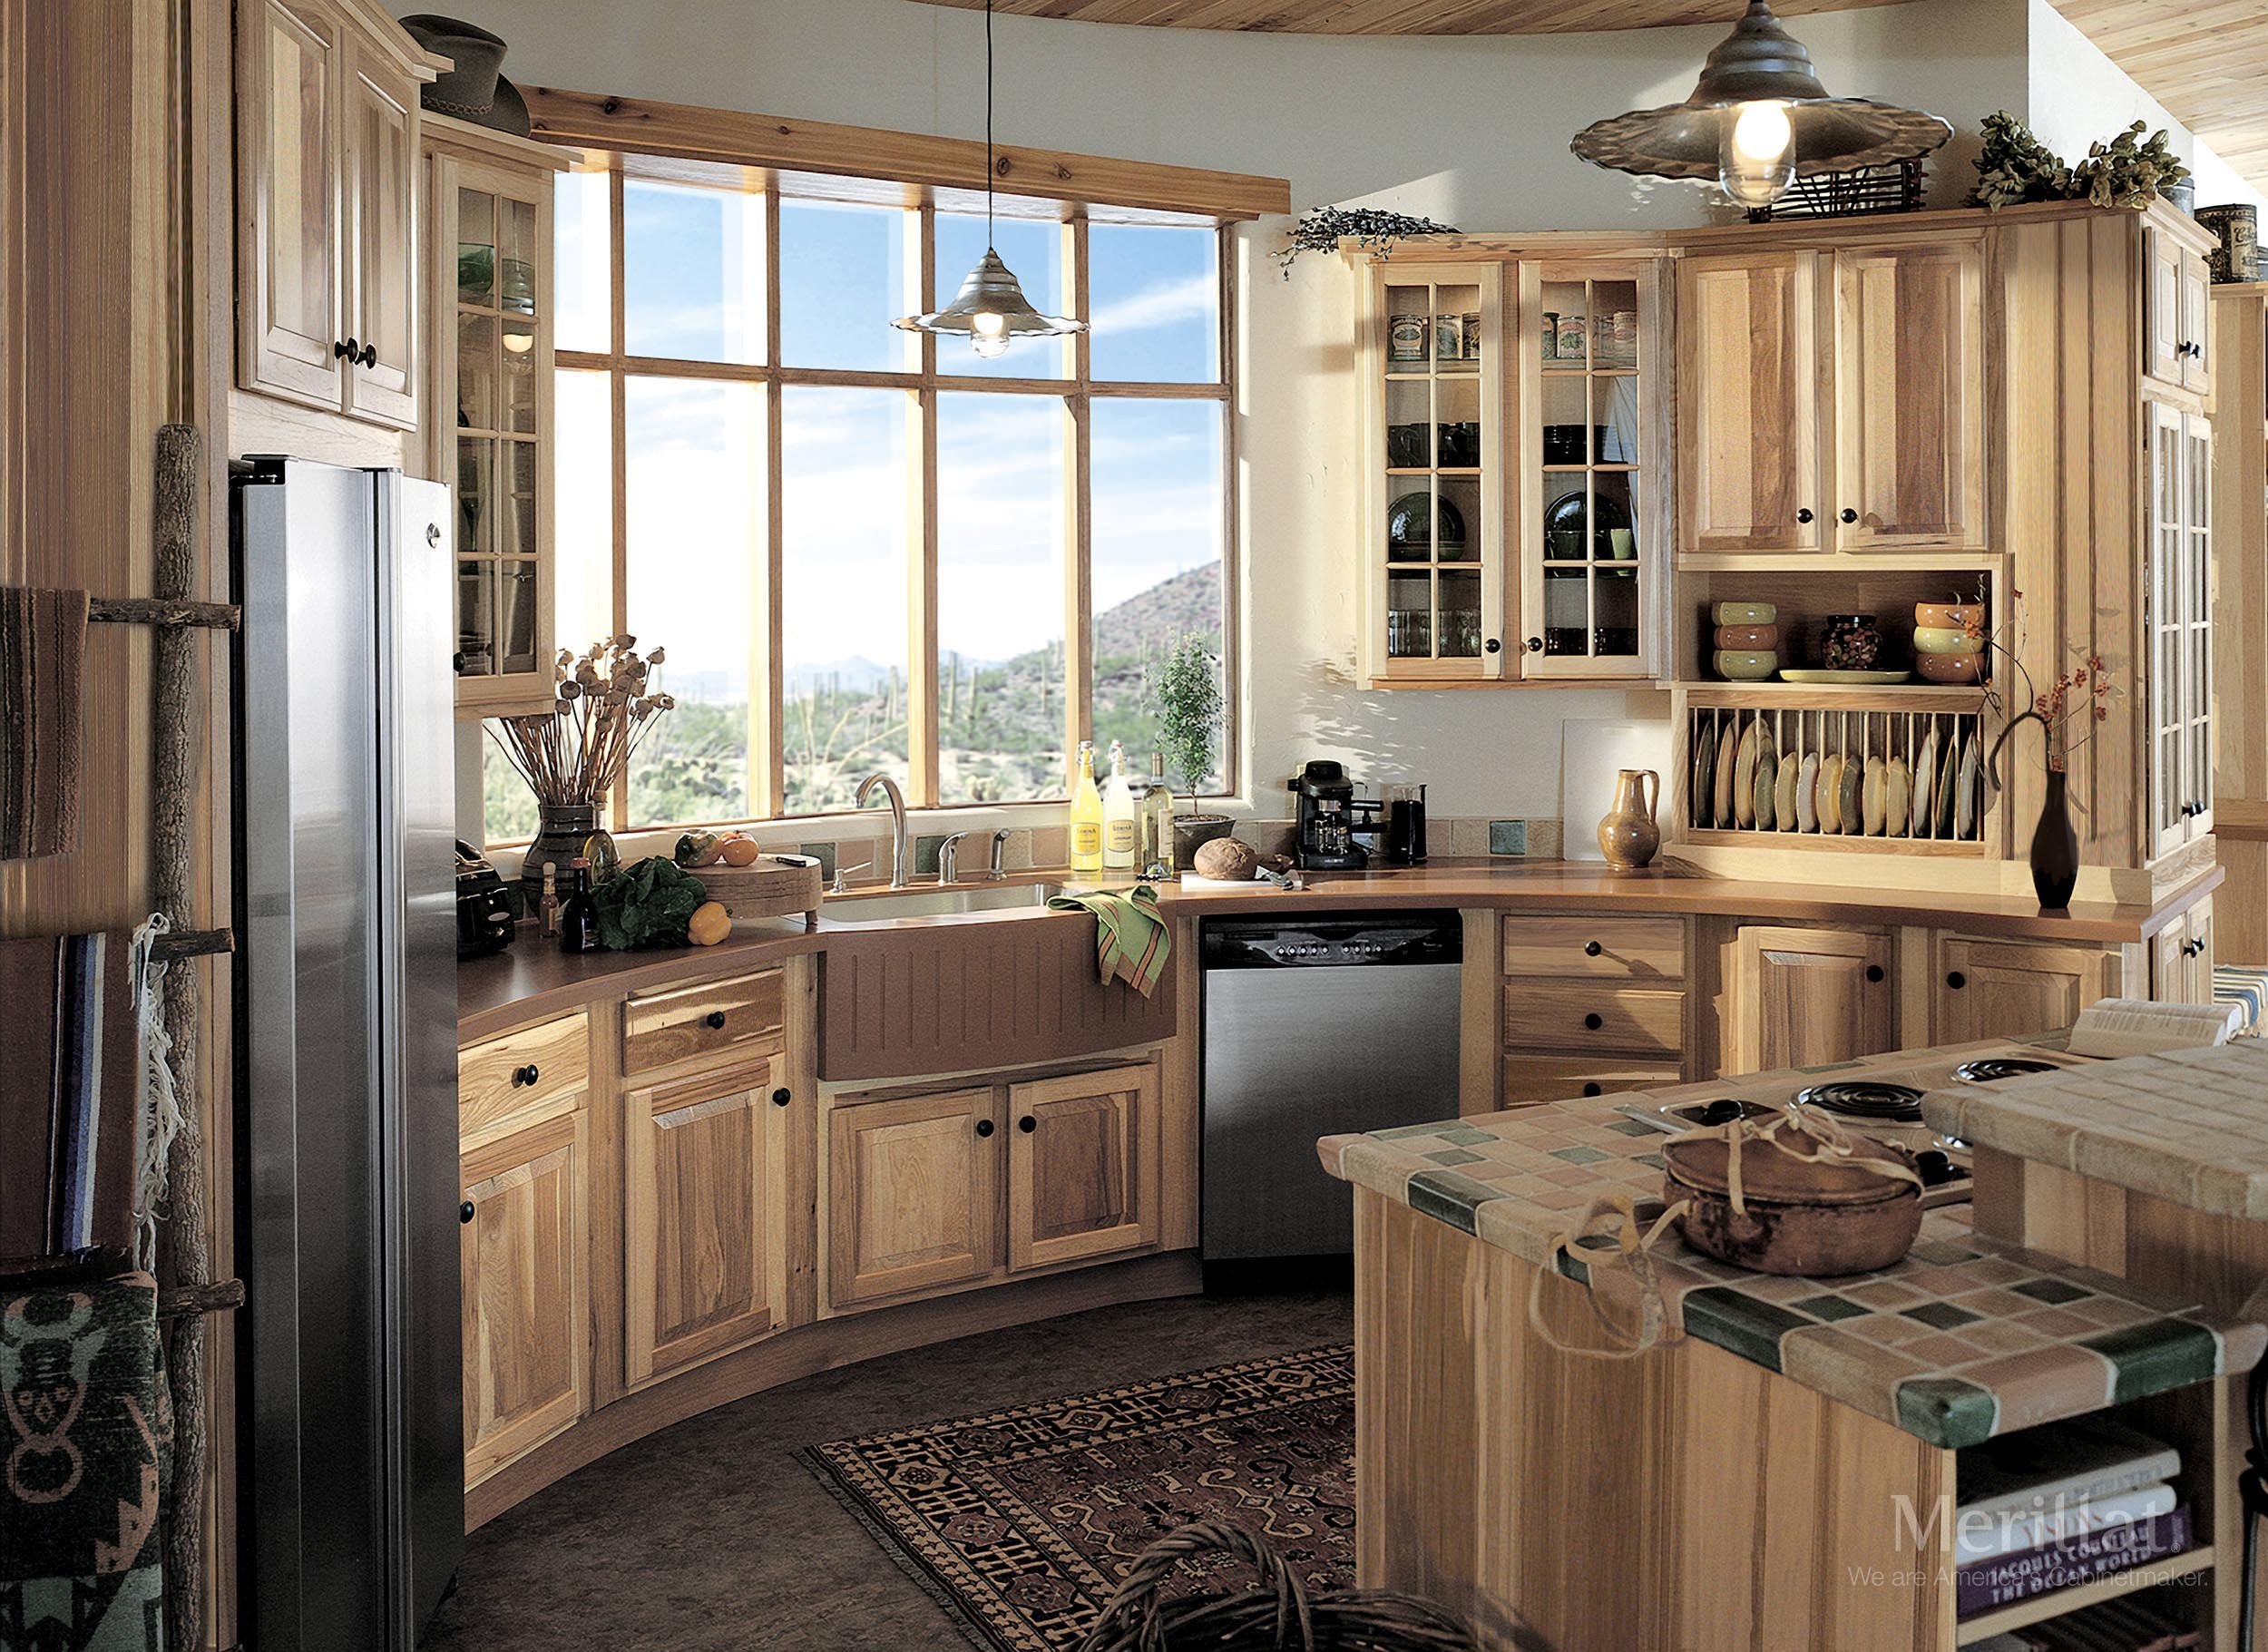 Eclectic Kitchens: El Paso Kitchen Cabinets